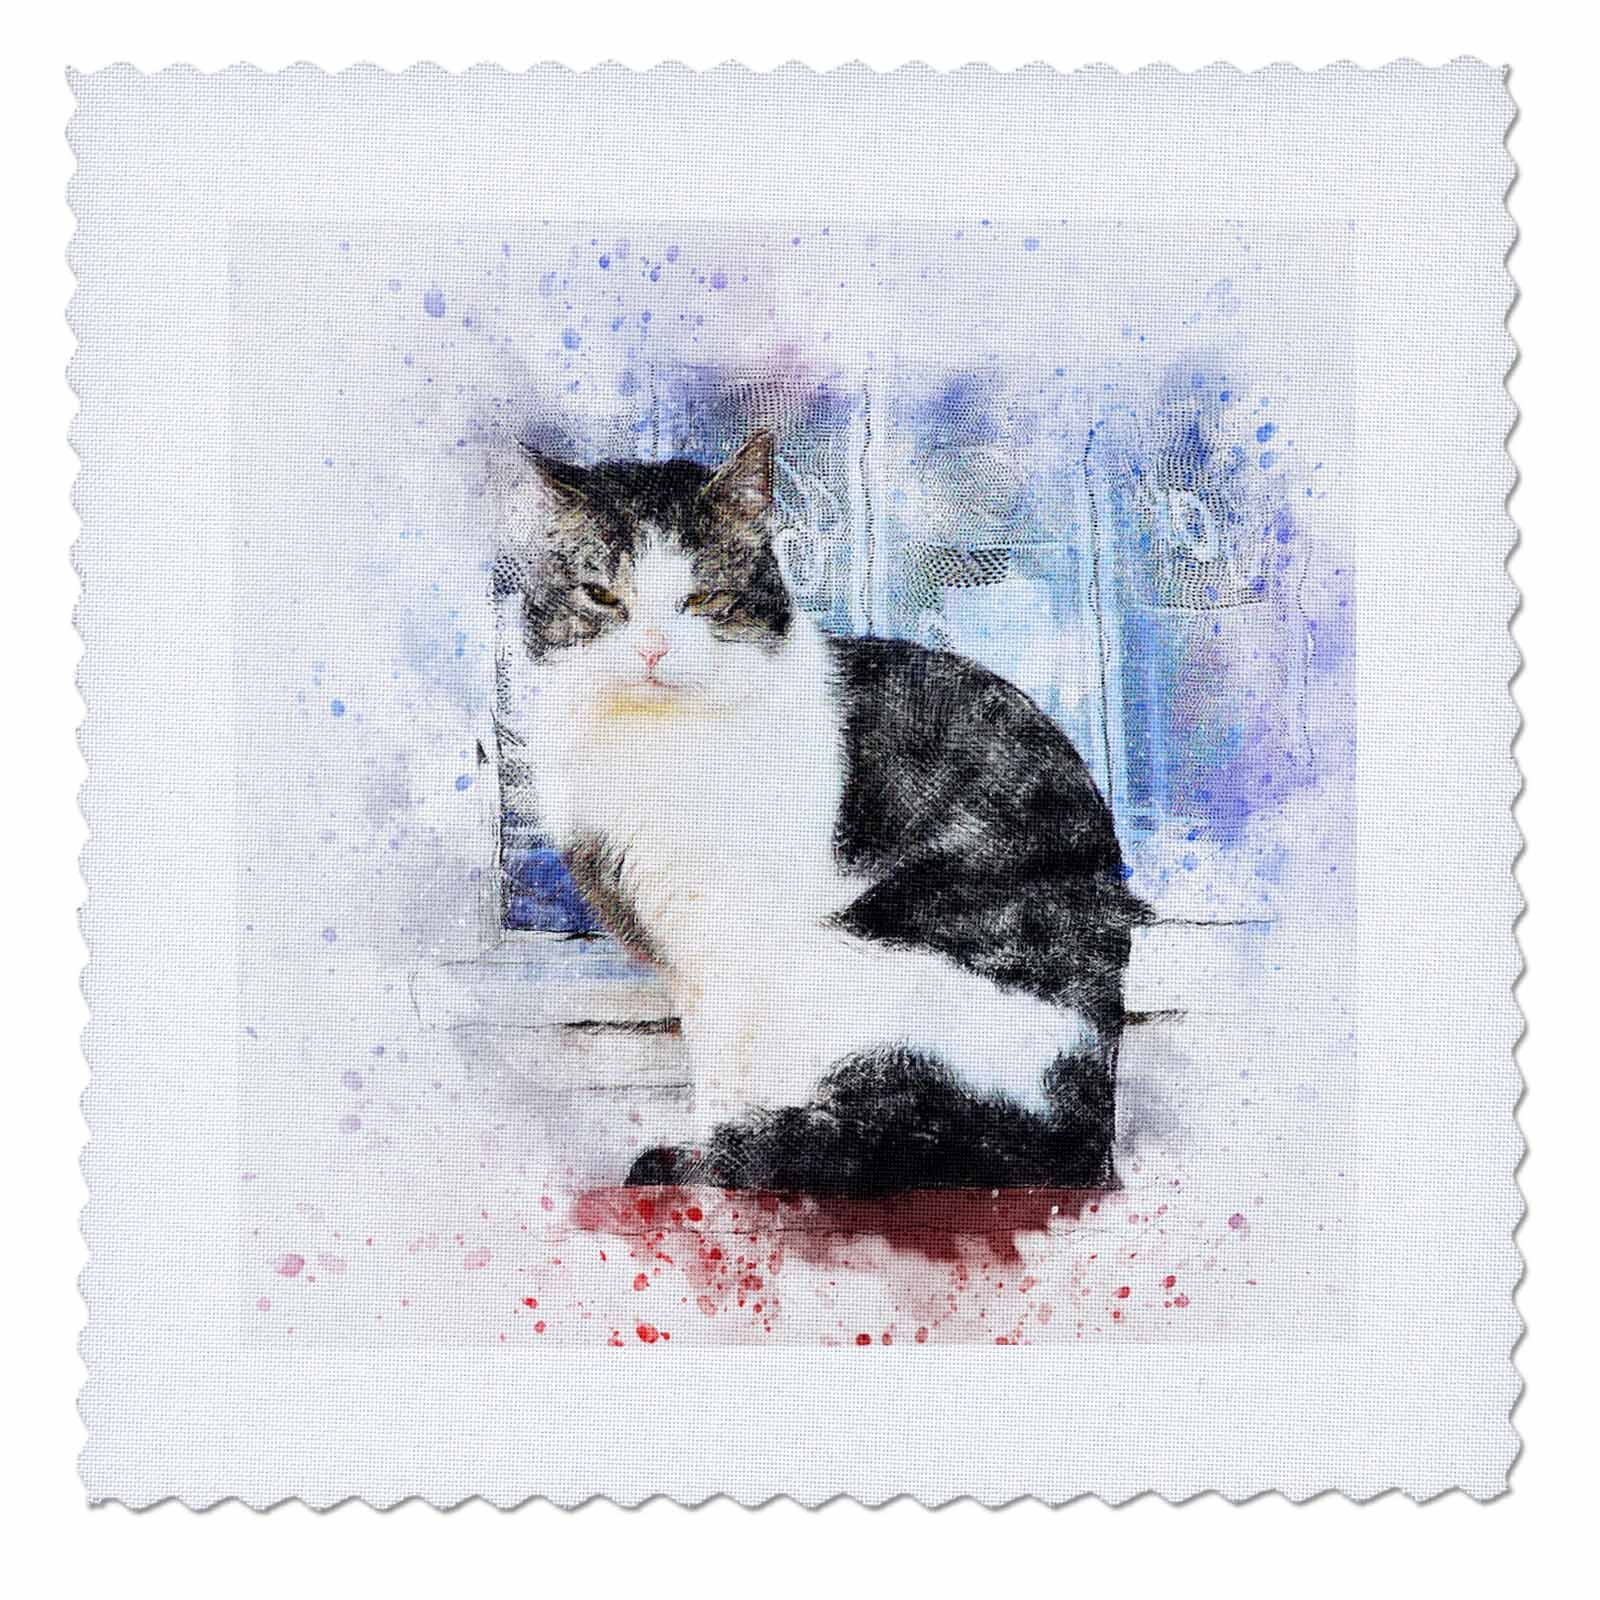 3dRose Sven Herkenrath Animal - Cat Pet Animal Kitty Love Watercolor Illustration - 14x14 inch quilt square (qs_280277_5)